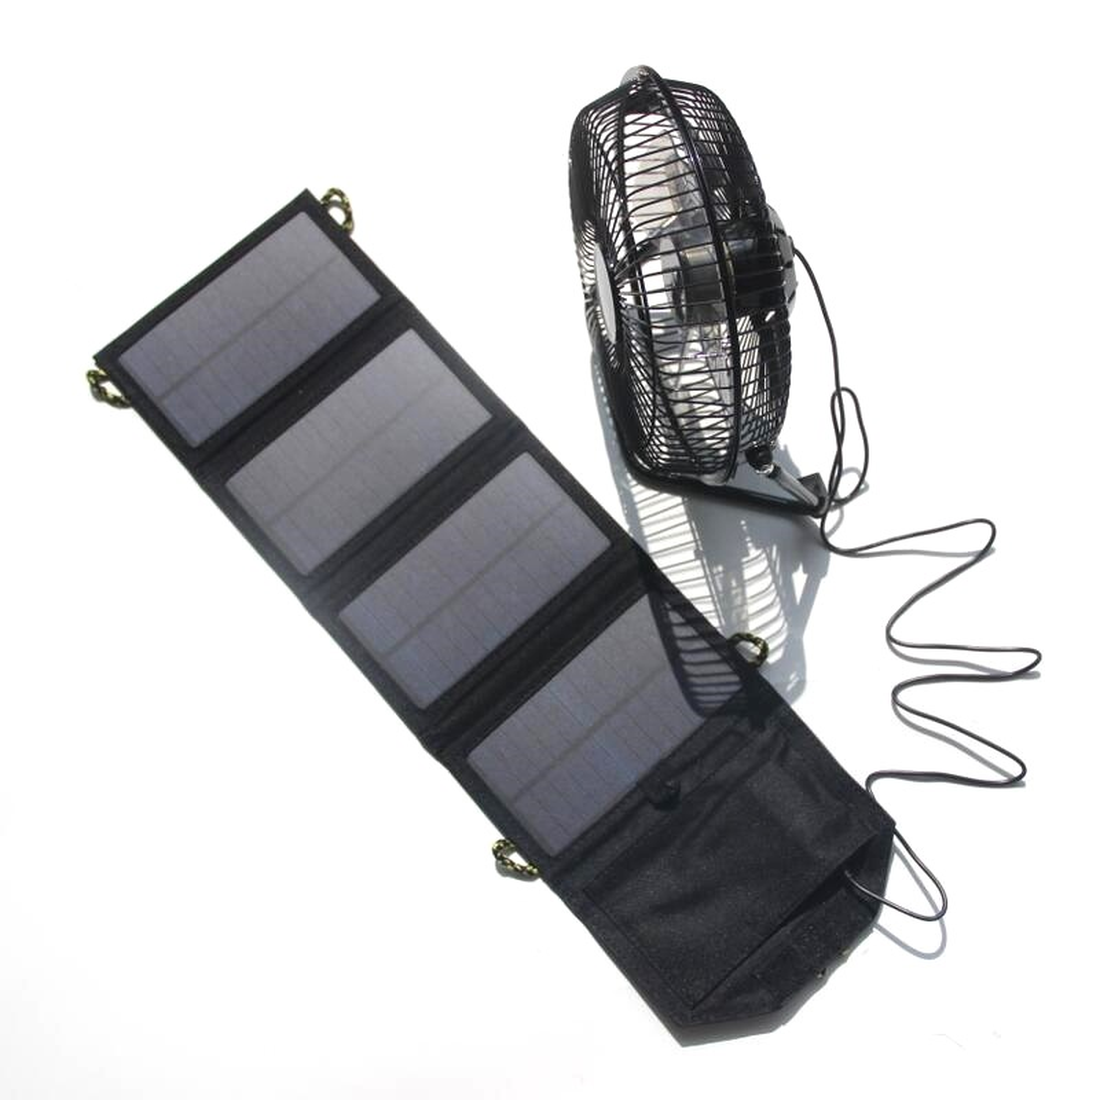 High Recommend 1 Set 7W Solar Panel Folding Bag with 8 Inch USB Solar Fan for Mobile Phone Charger Power Outdoor Equipment Hot palmexx x1usb px solar 7w